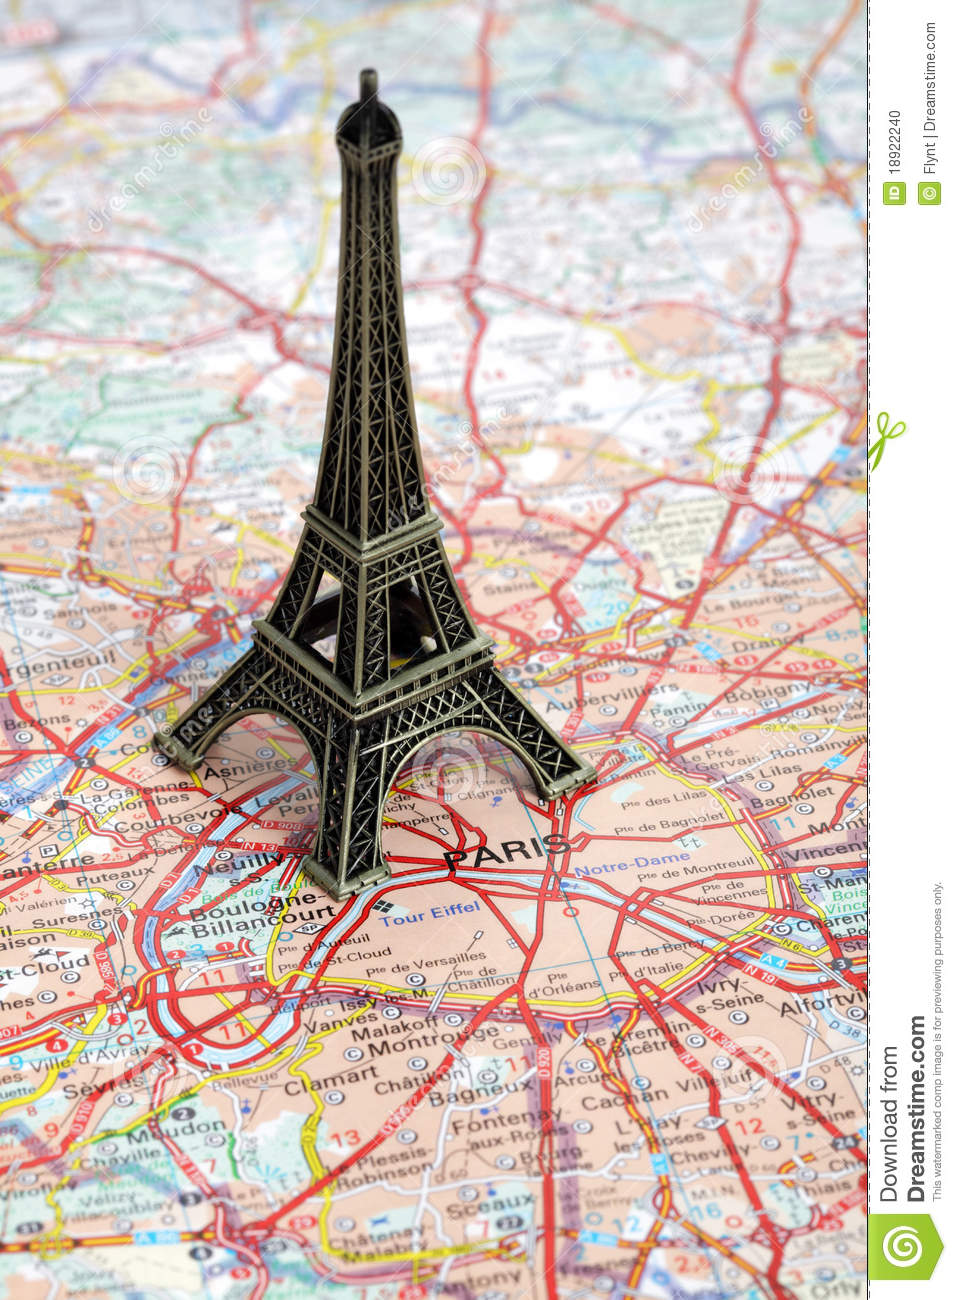 Statue Of Eiffel Tower On Map Of Paris Stock Photo - Image of statue ...